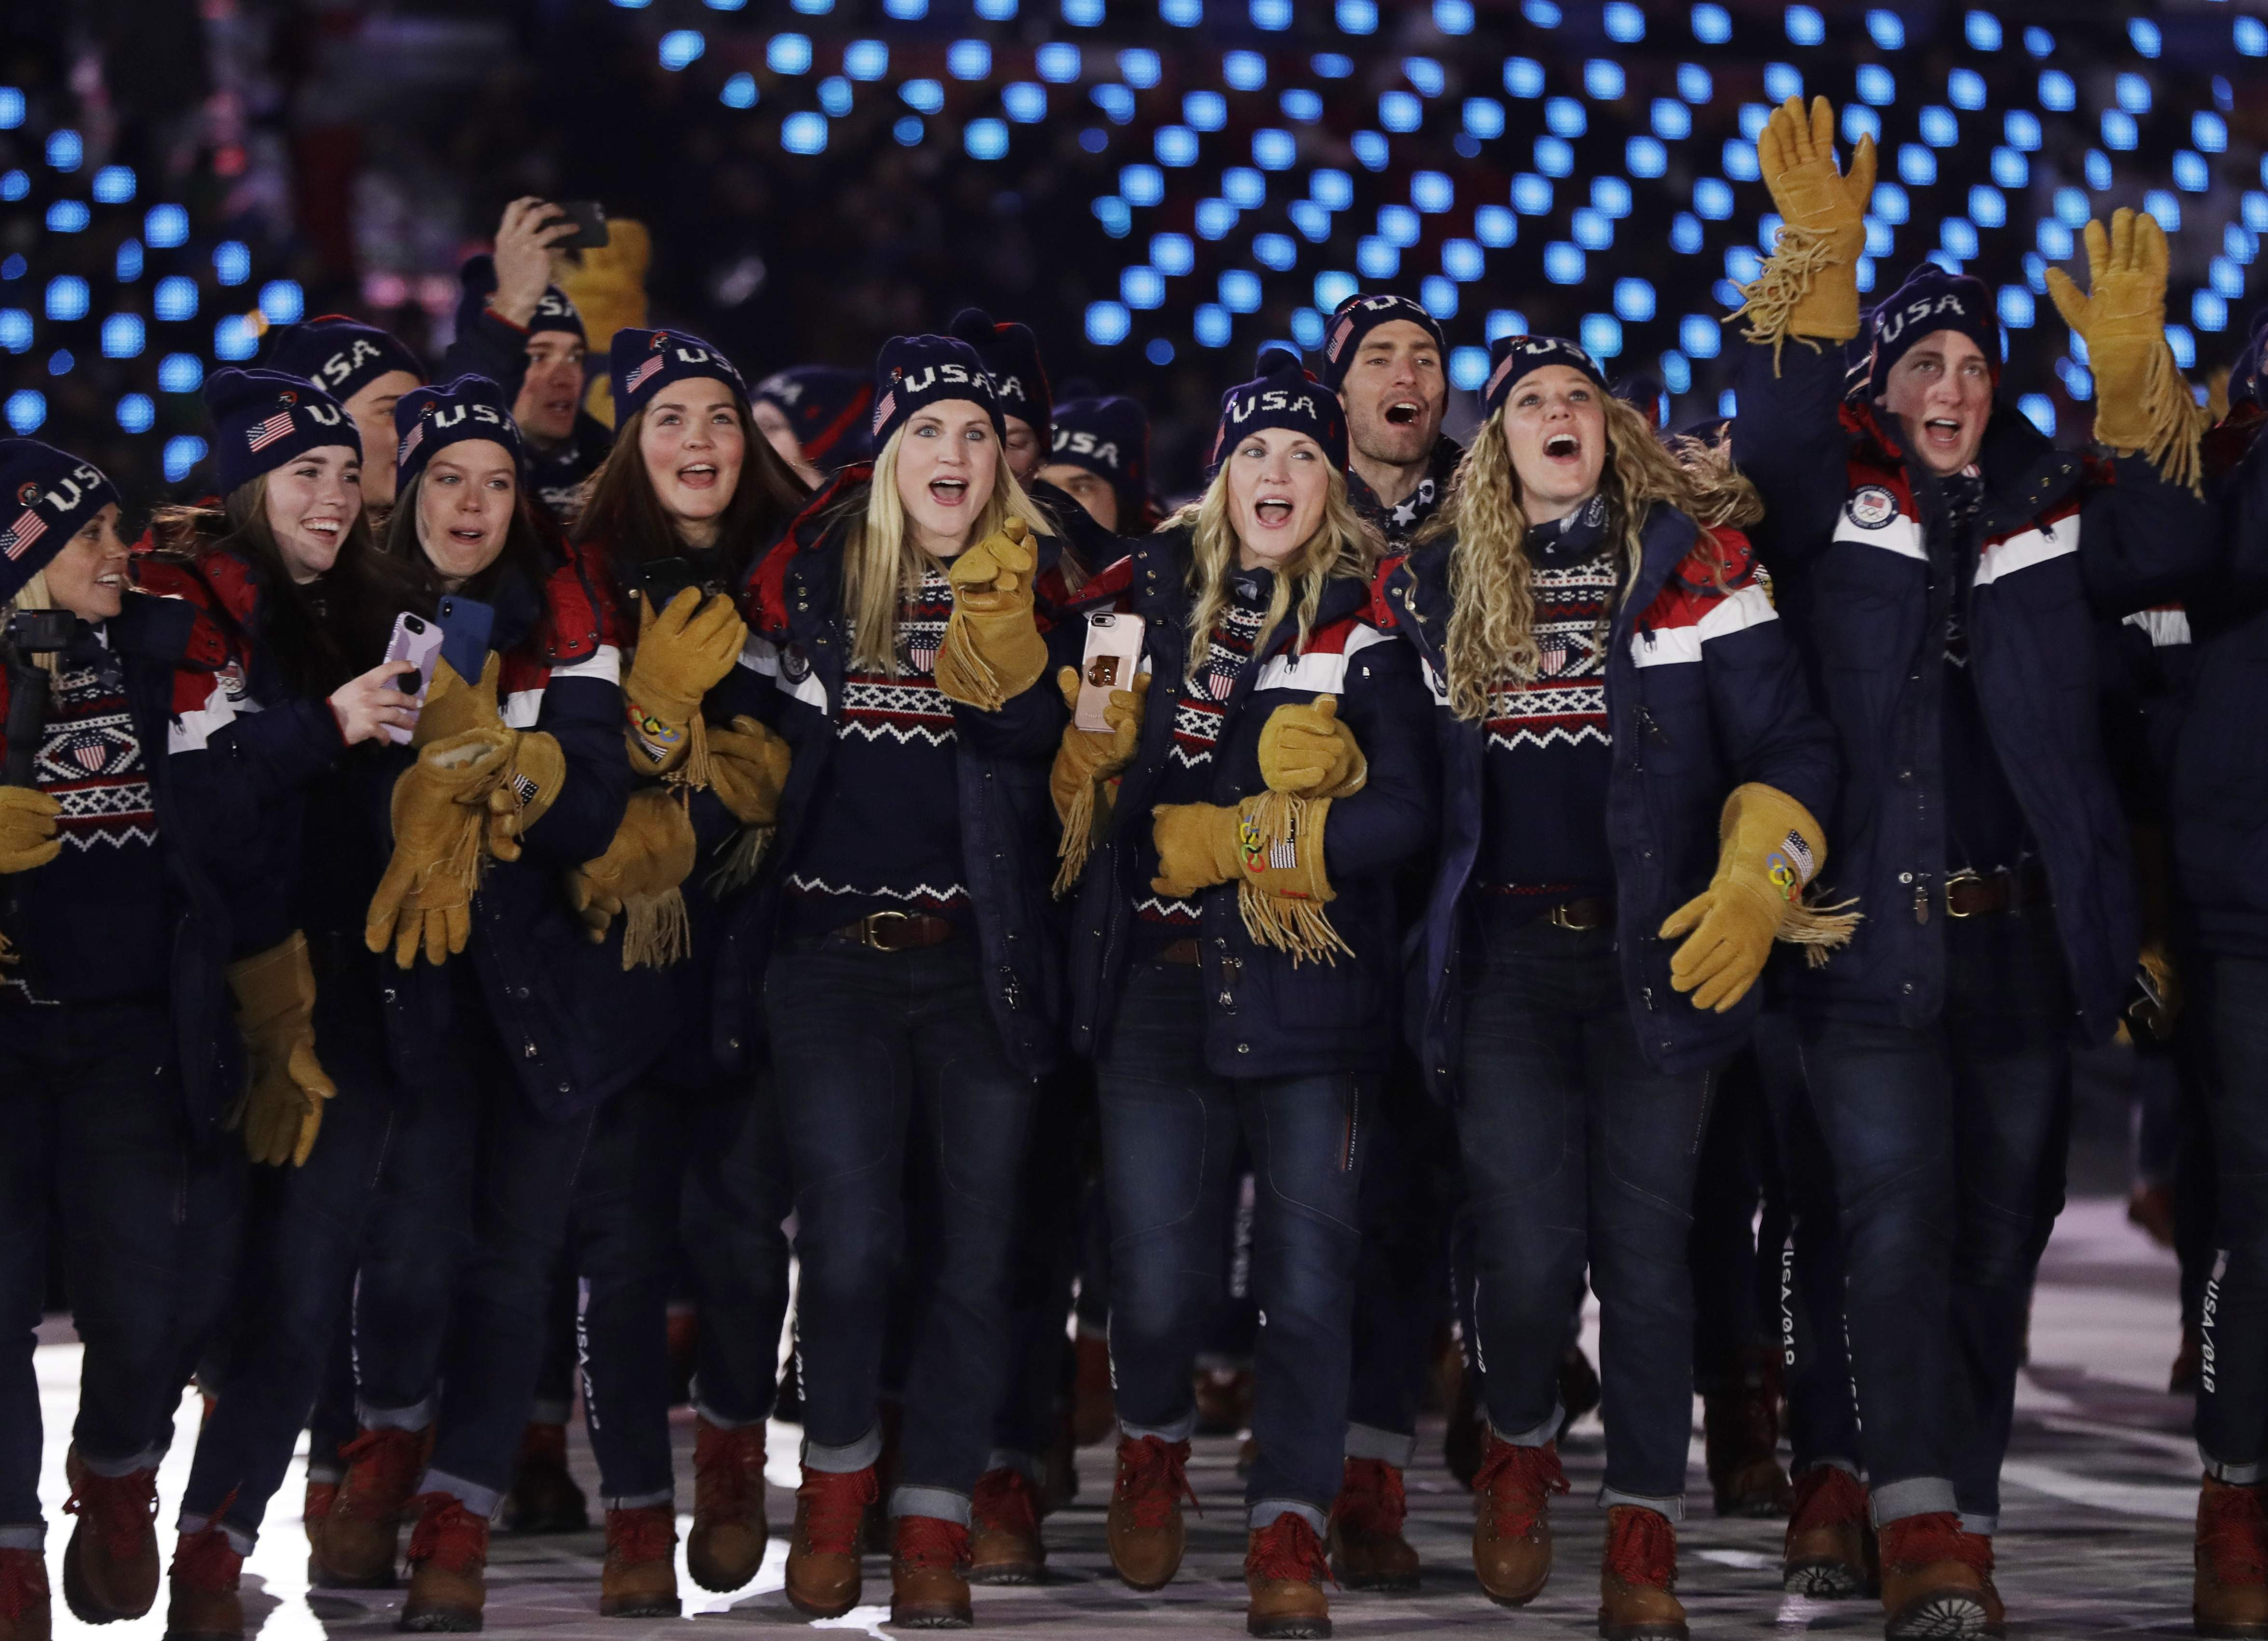 Members of the United States team arrives during the opening ceremony of the 2018 Winter Olympics in Pyeongchang, South Korea, Friday, Feb. 9, 2018. (AP Photo/Petr David Josek)